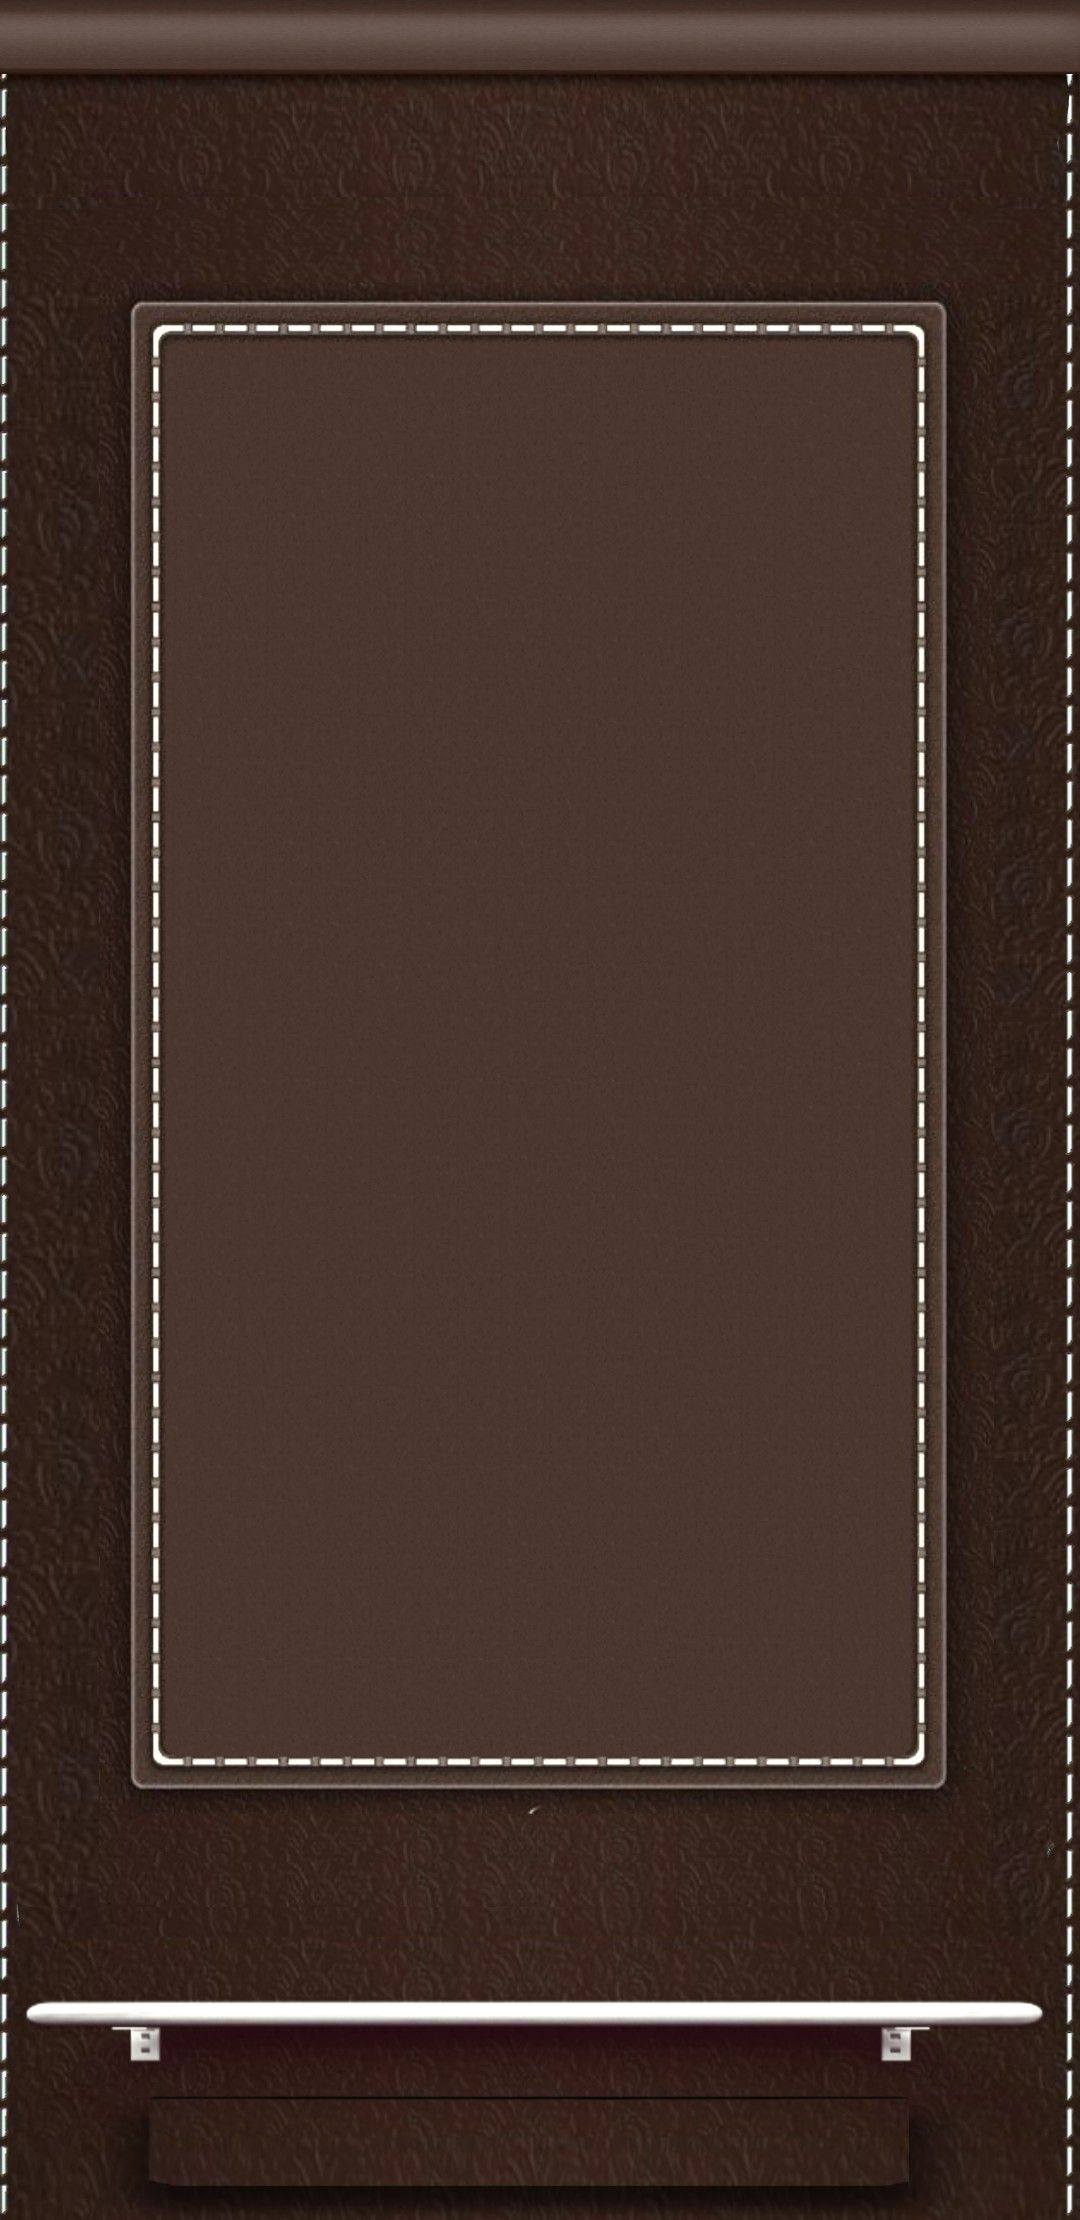 Pin by Kashi 2550 on leather Smartphone wallpaper